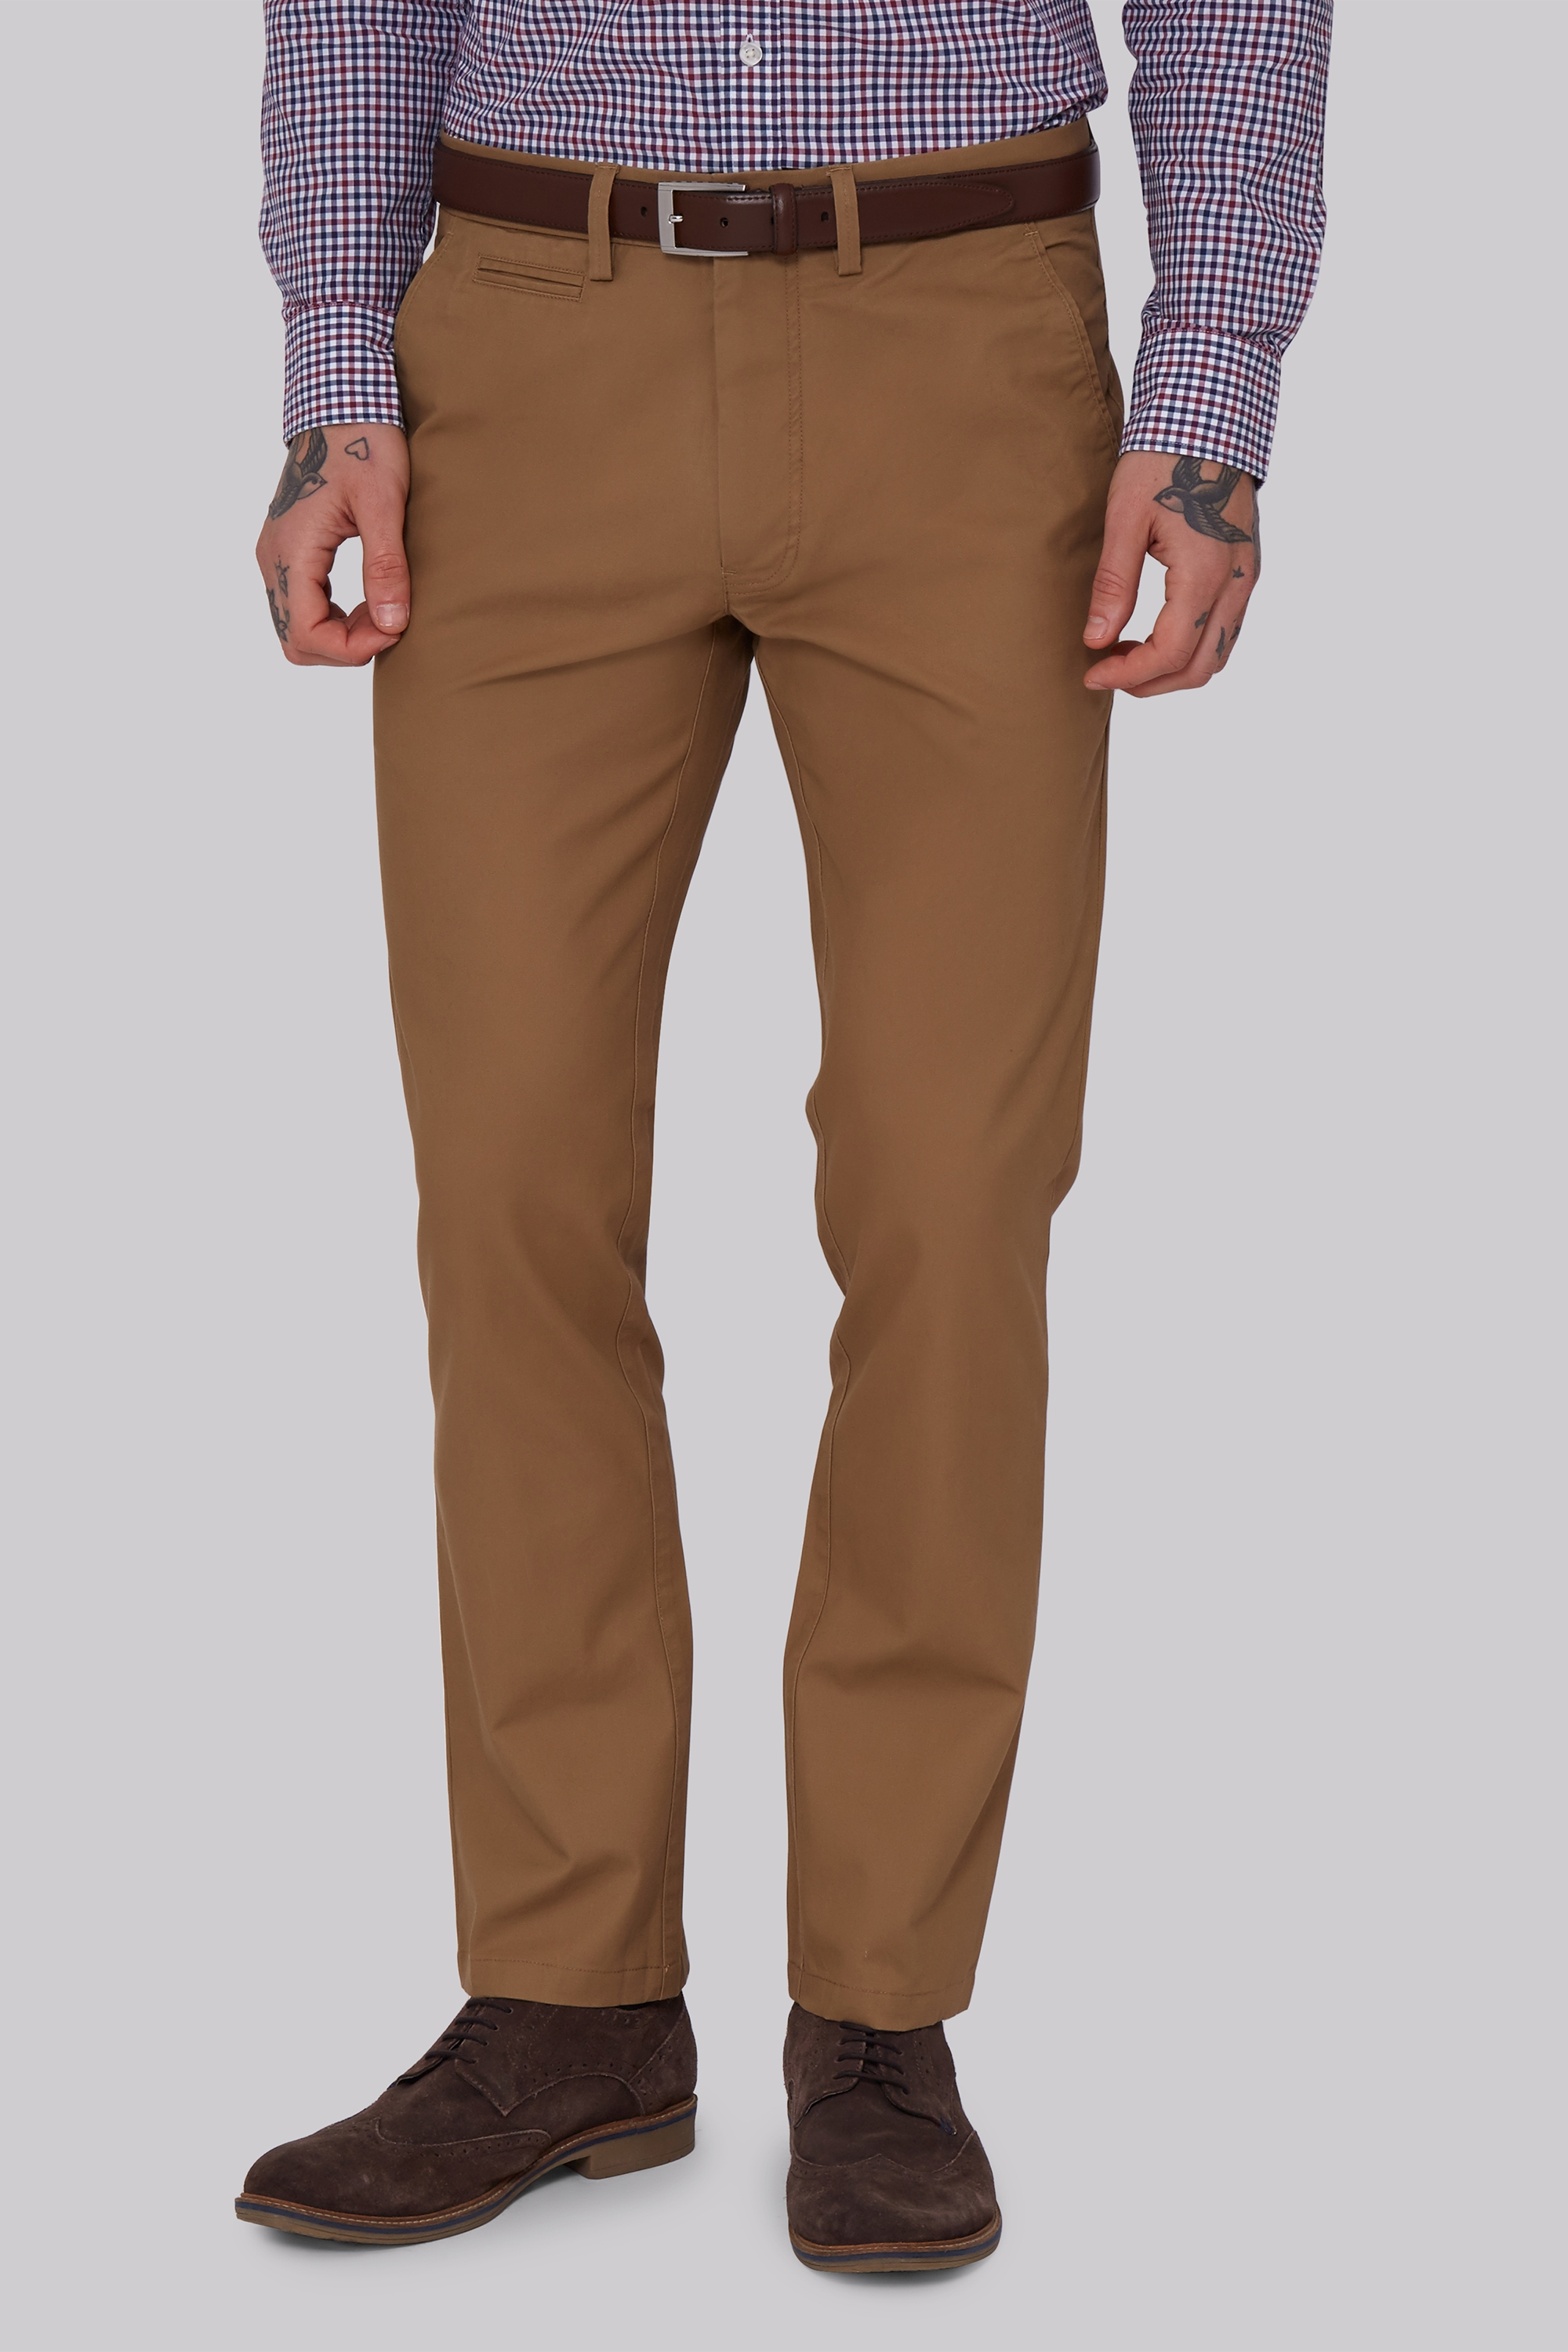 Moss 1851 Tailored Fit Tobacco Chino